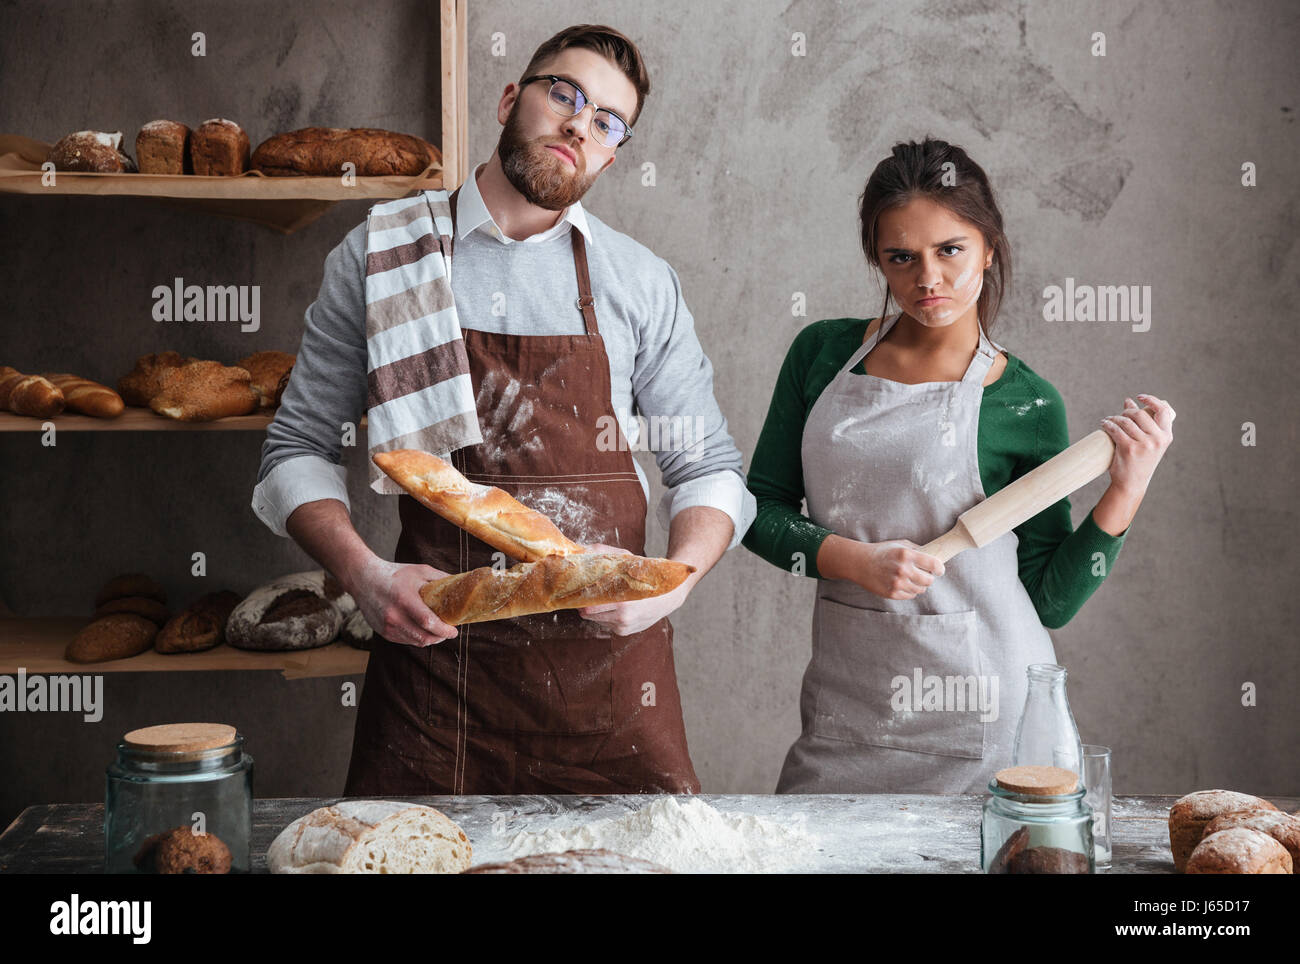 Young man with two loafs and woman with rollin pin standing in kitchen earnestly Stock Photo